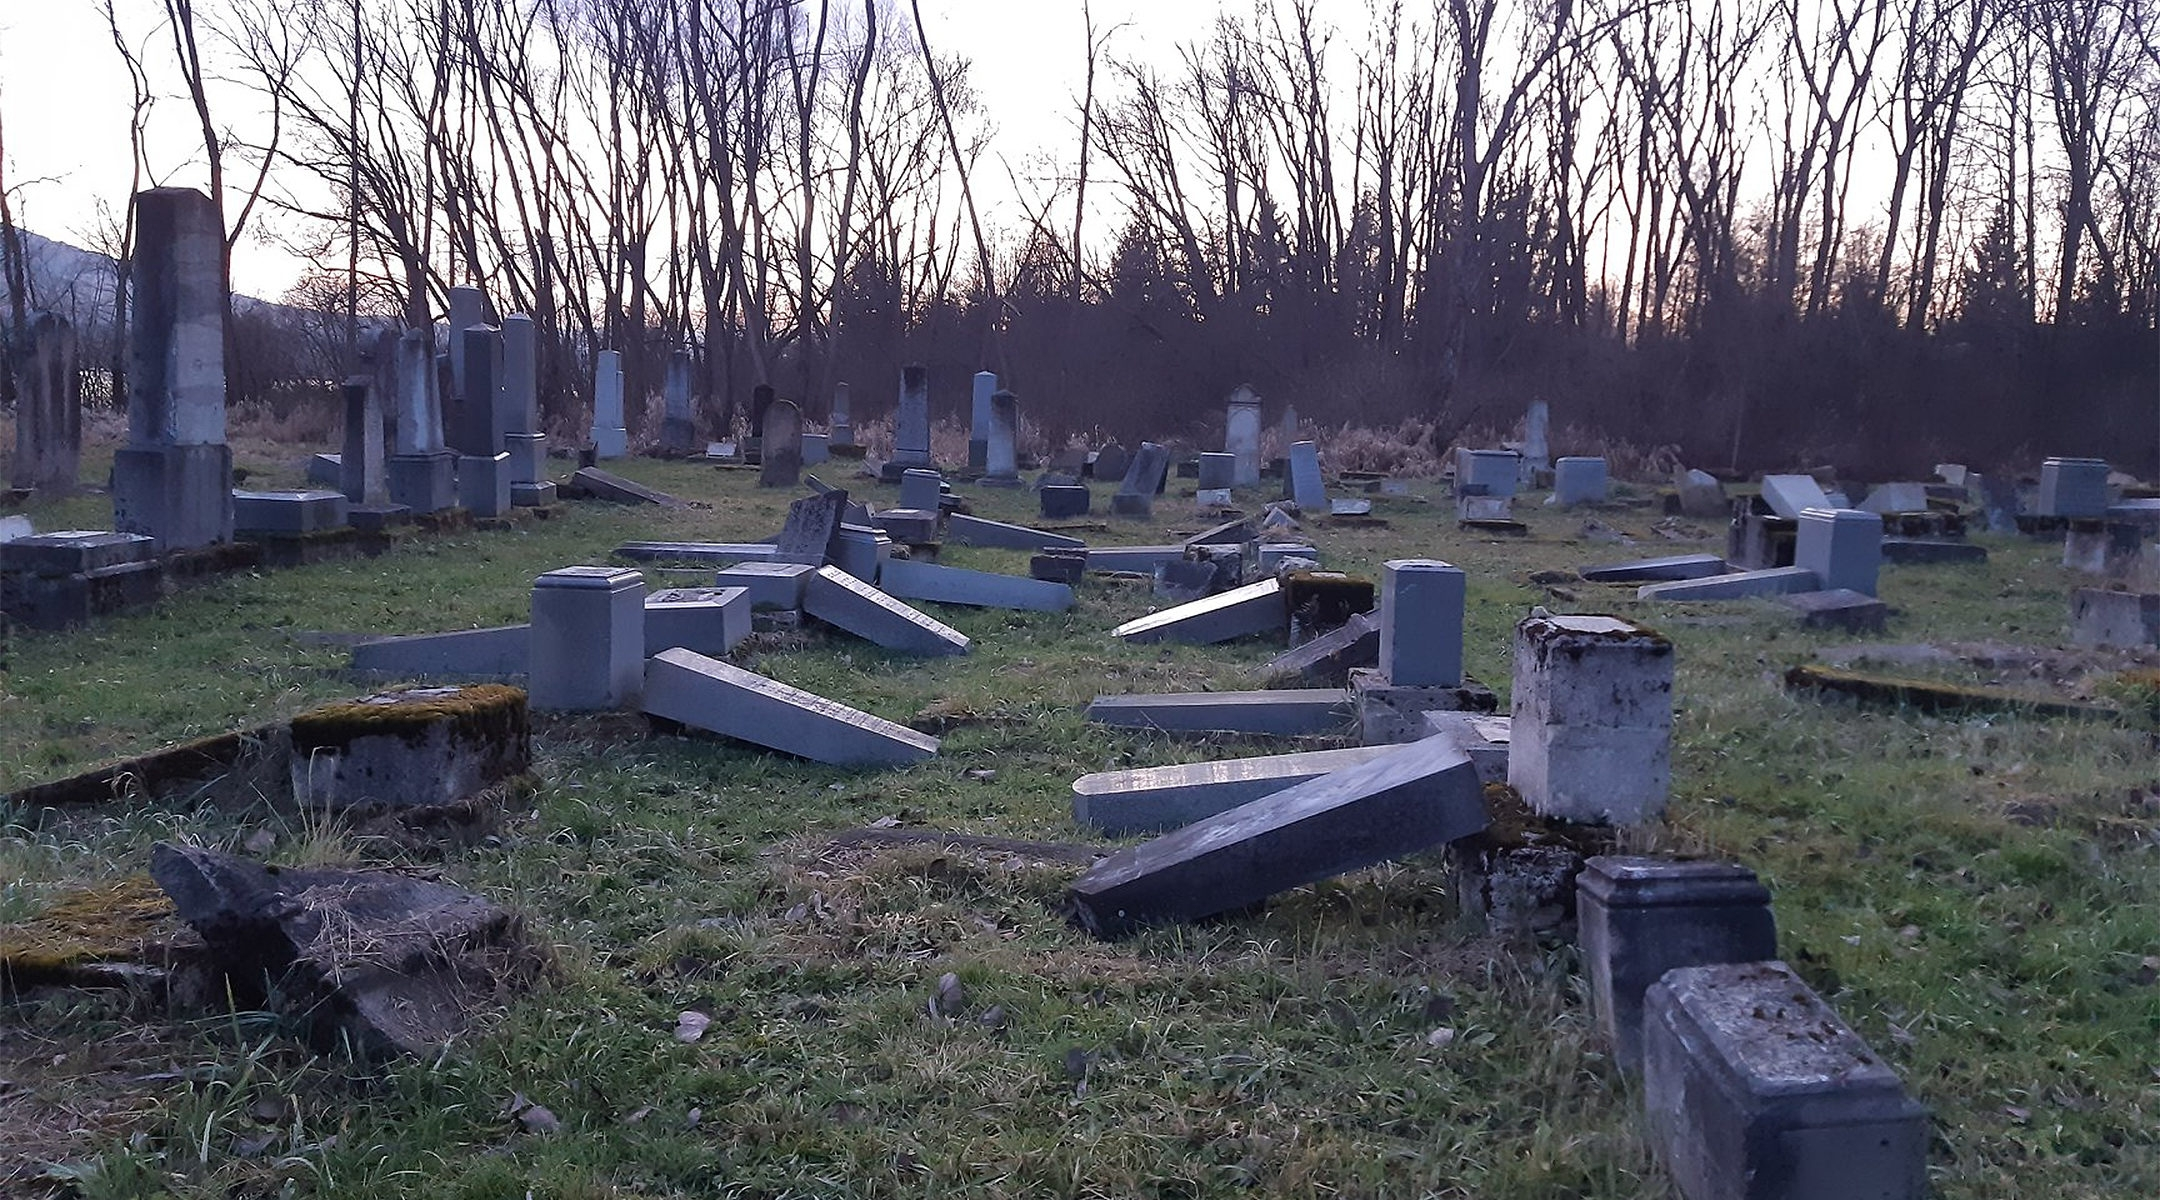 The aftermath of vandalism at the ancient Jewish cemetery of Námestovo, Slovakia in December 2019. (Courtesy of ZCN)